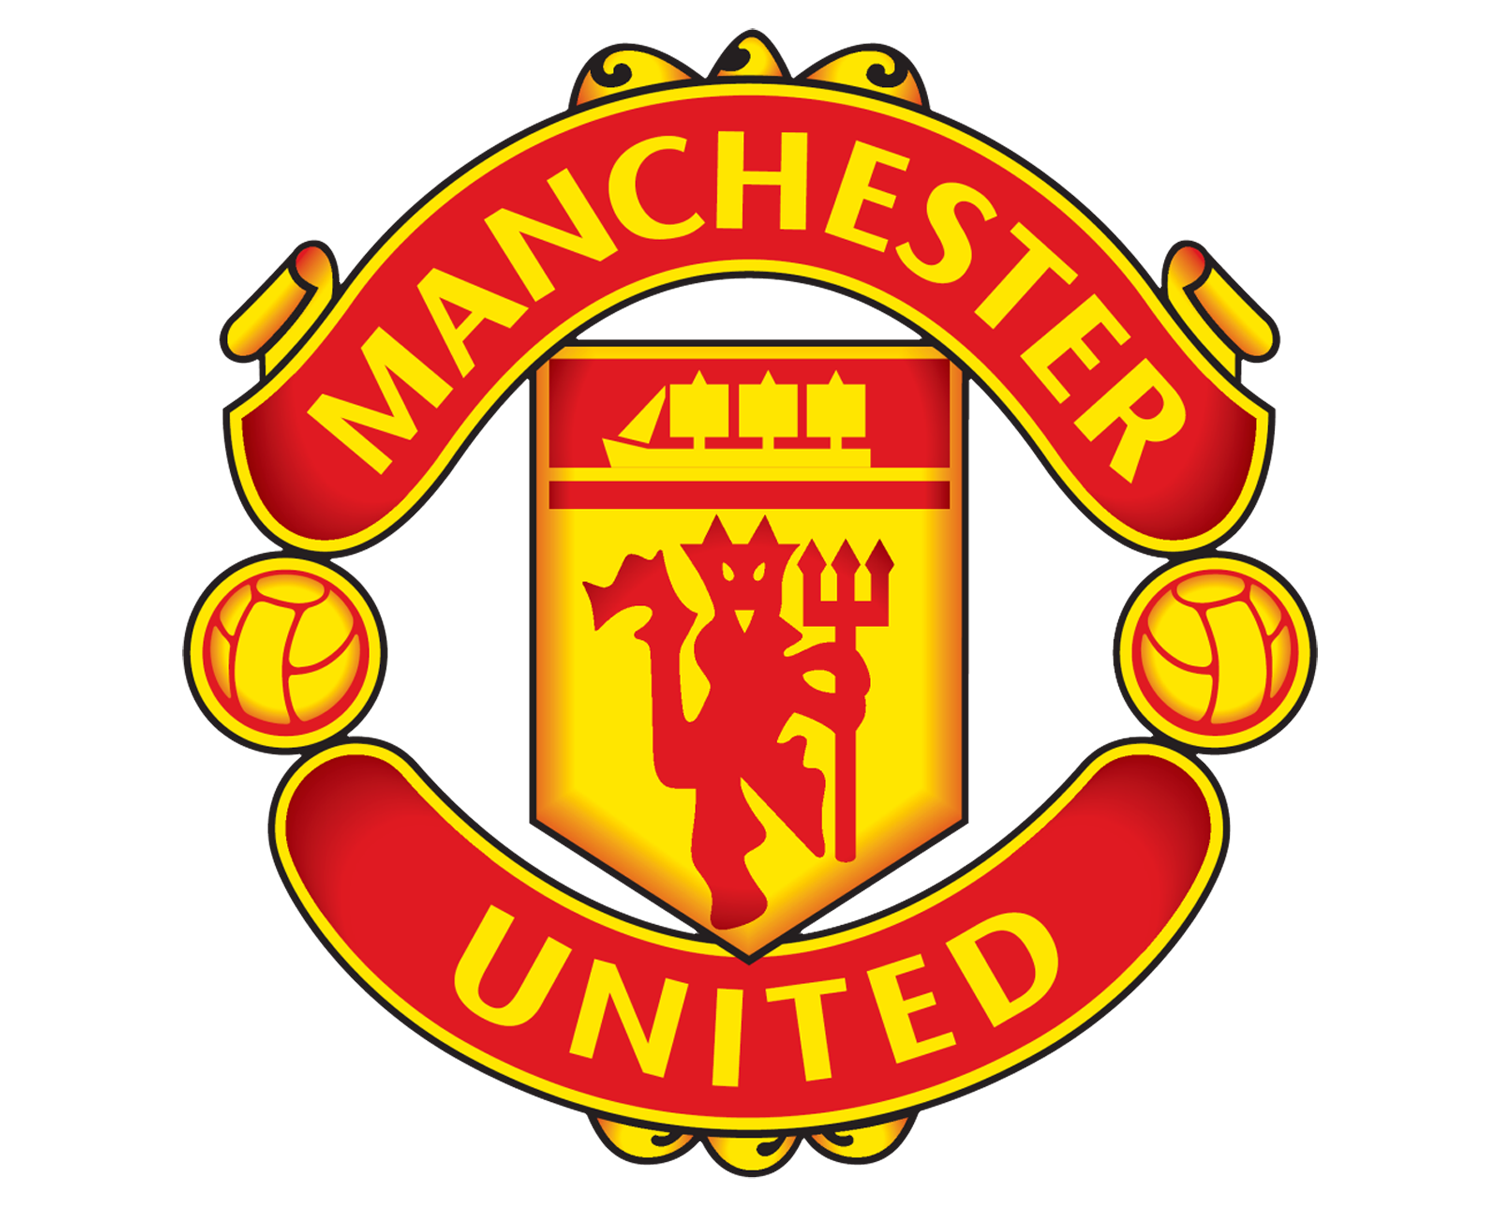 Manchester United Logo Manchester United Football Manchester United Logo Manchester United Football Club